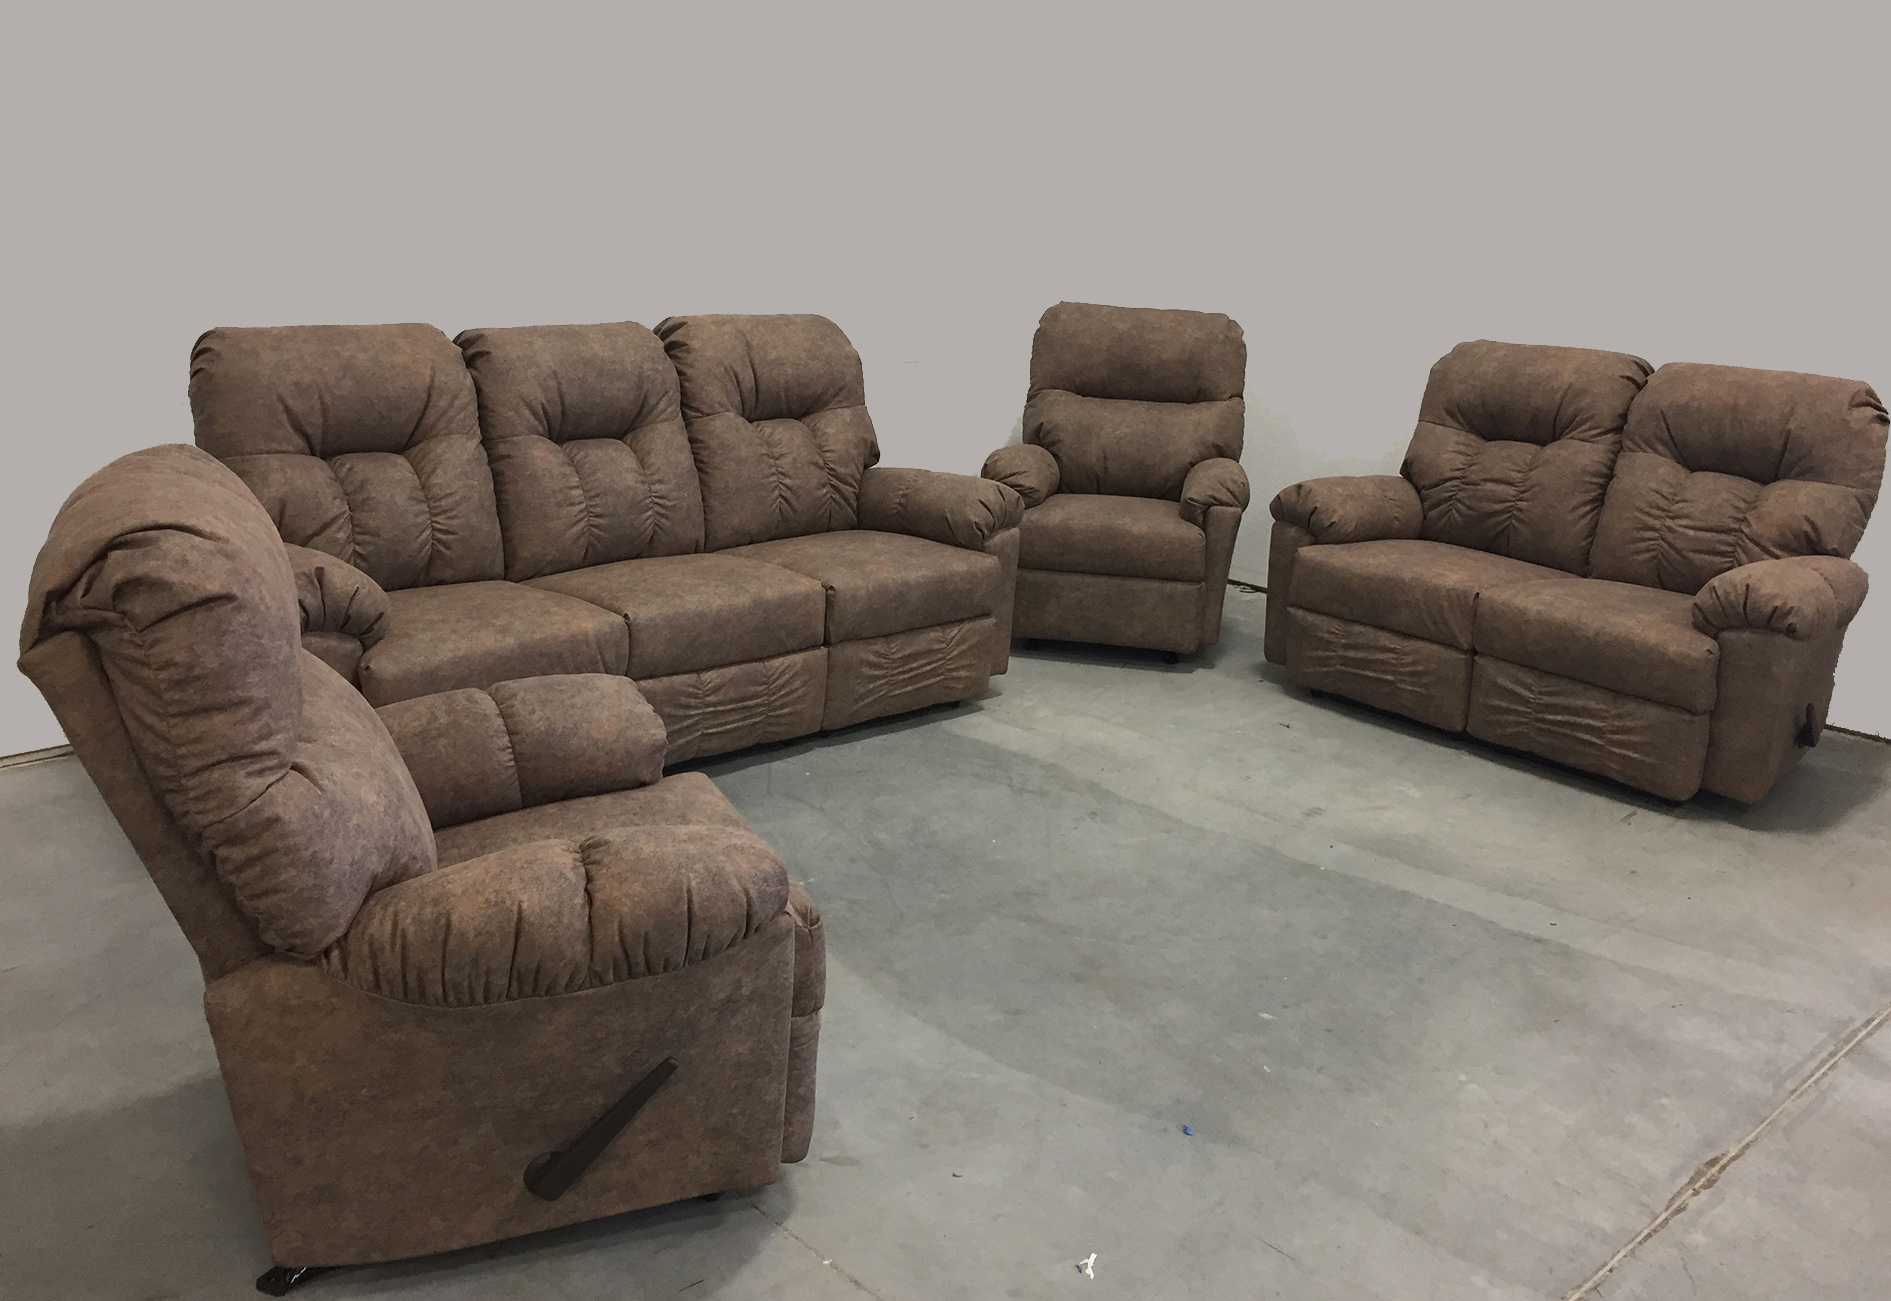 Very comfortable Reclining Sofa Loveseat and Rocker Recliner Set.